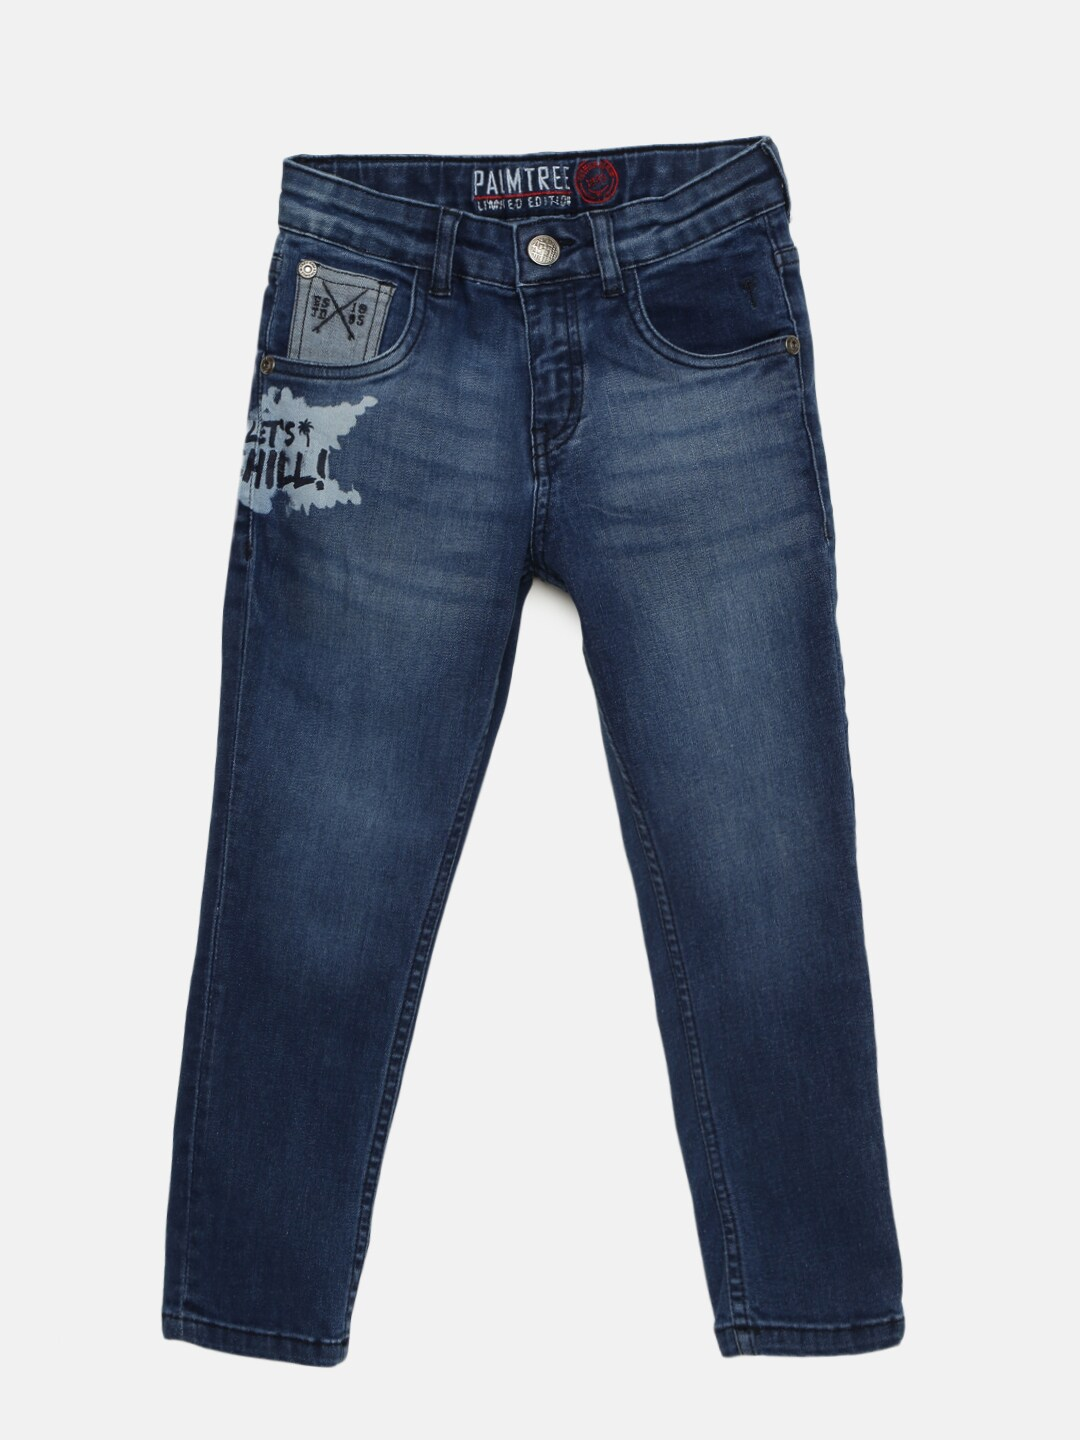 2ca496f4 Jeans - Buy Jeans for Men, Women & Kids Online in India | Myntra